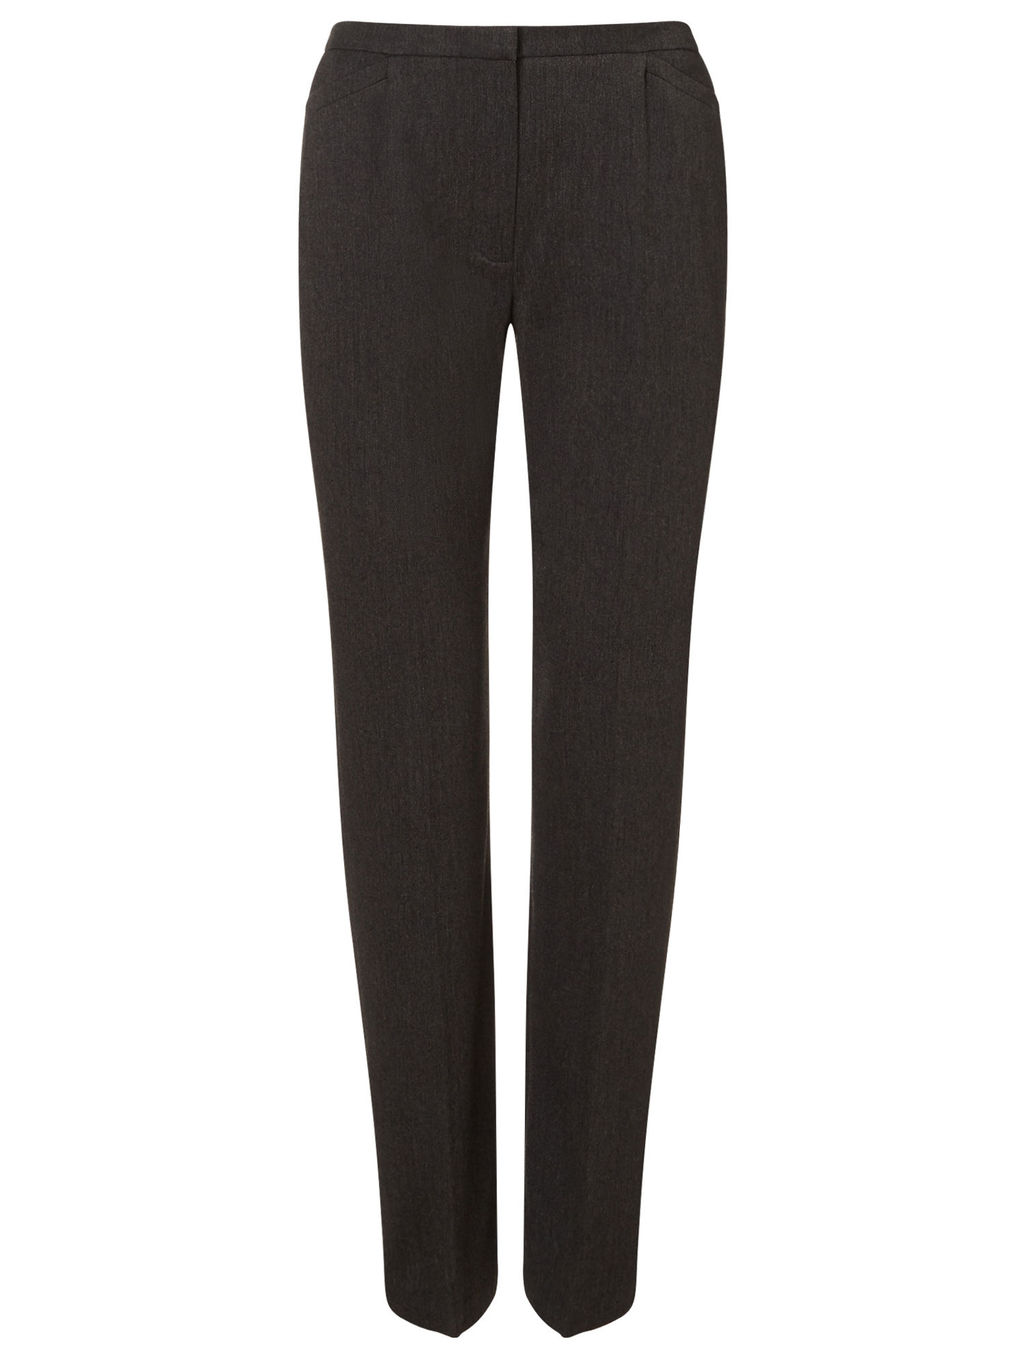 Charcoal Straight Leg Trouser - length: standard; pattern: plain; waist: mid/regular rise; predominant colour: charcoal; occasions: work; fibres: polyester/polyamide - stretch; fit: straight leg; pattern type: fabric; texture group: woven light midweight; style: standard; season: s/s 2016; wardrobe: basic